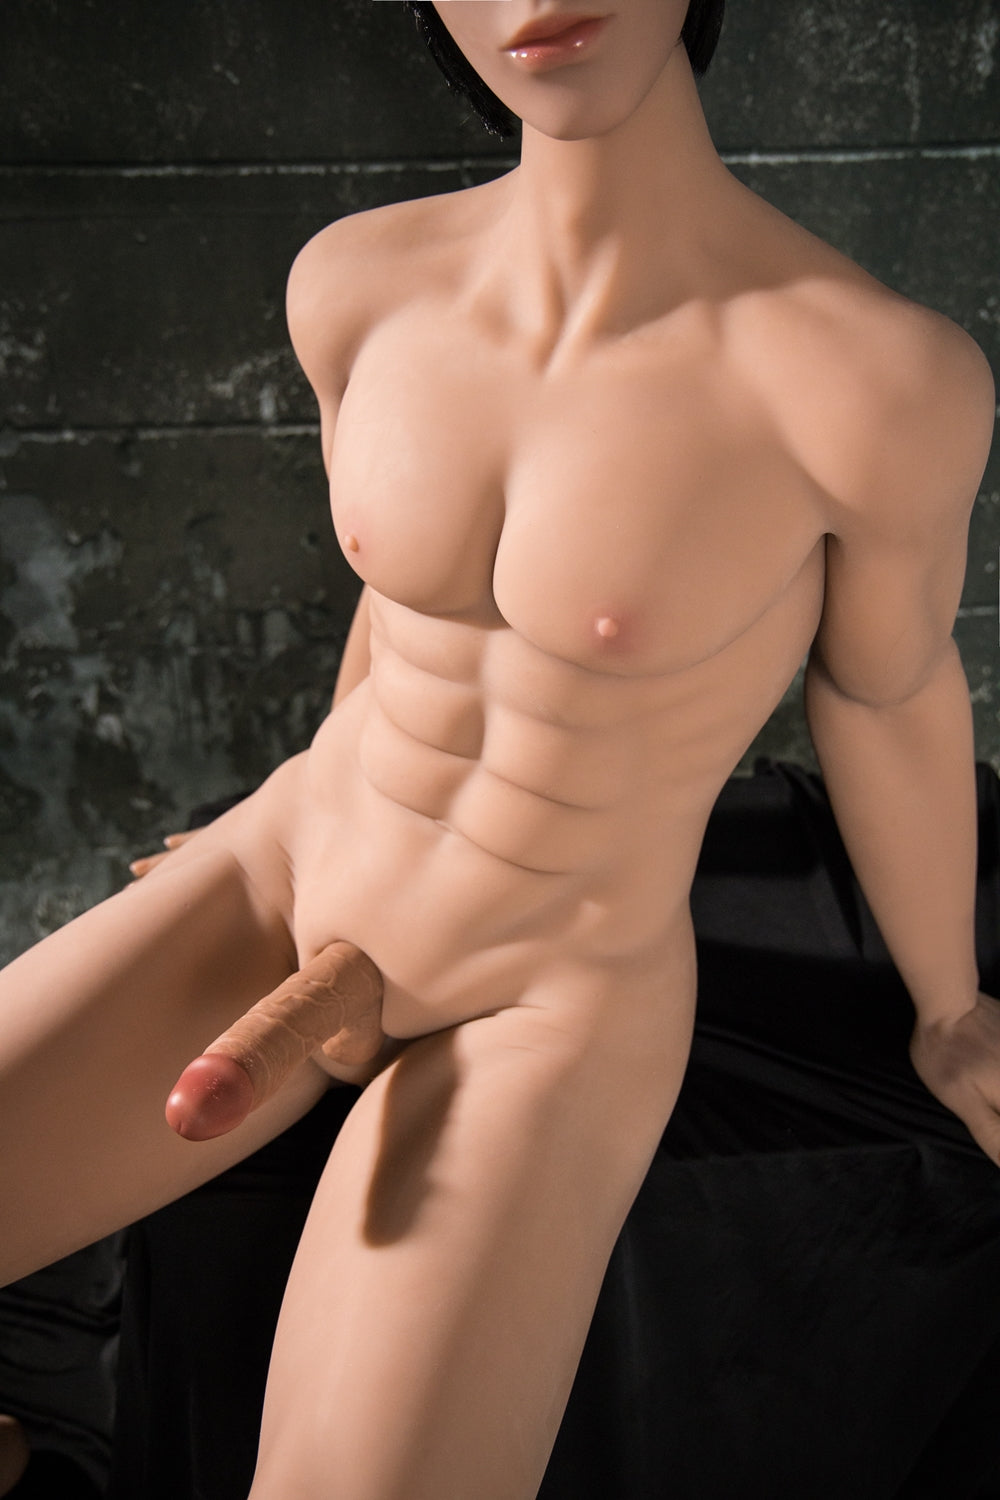 gay penis sex doll silicone